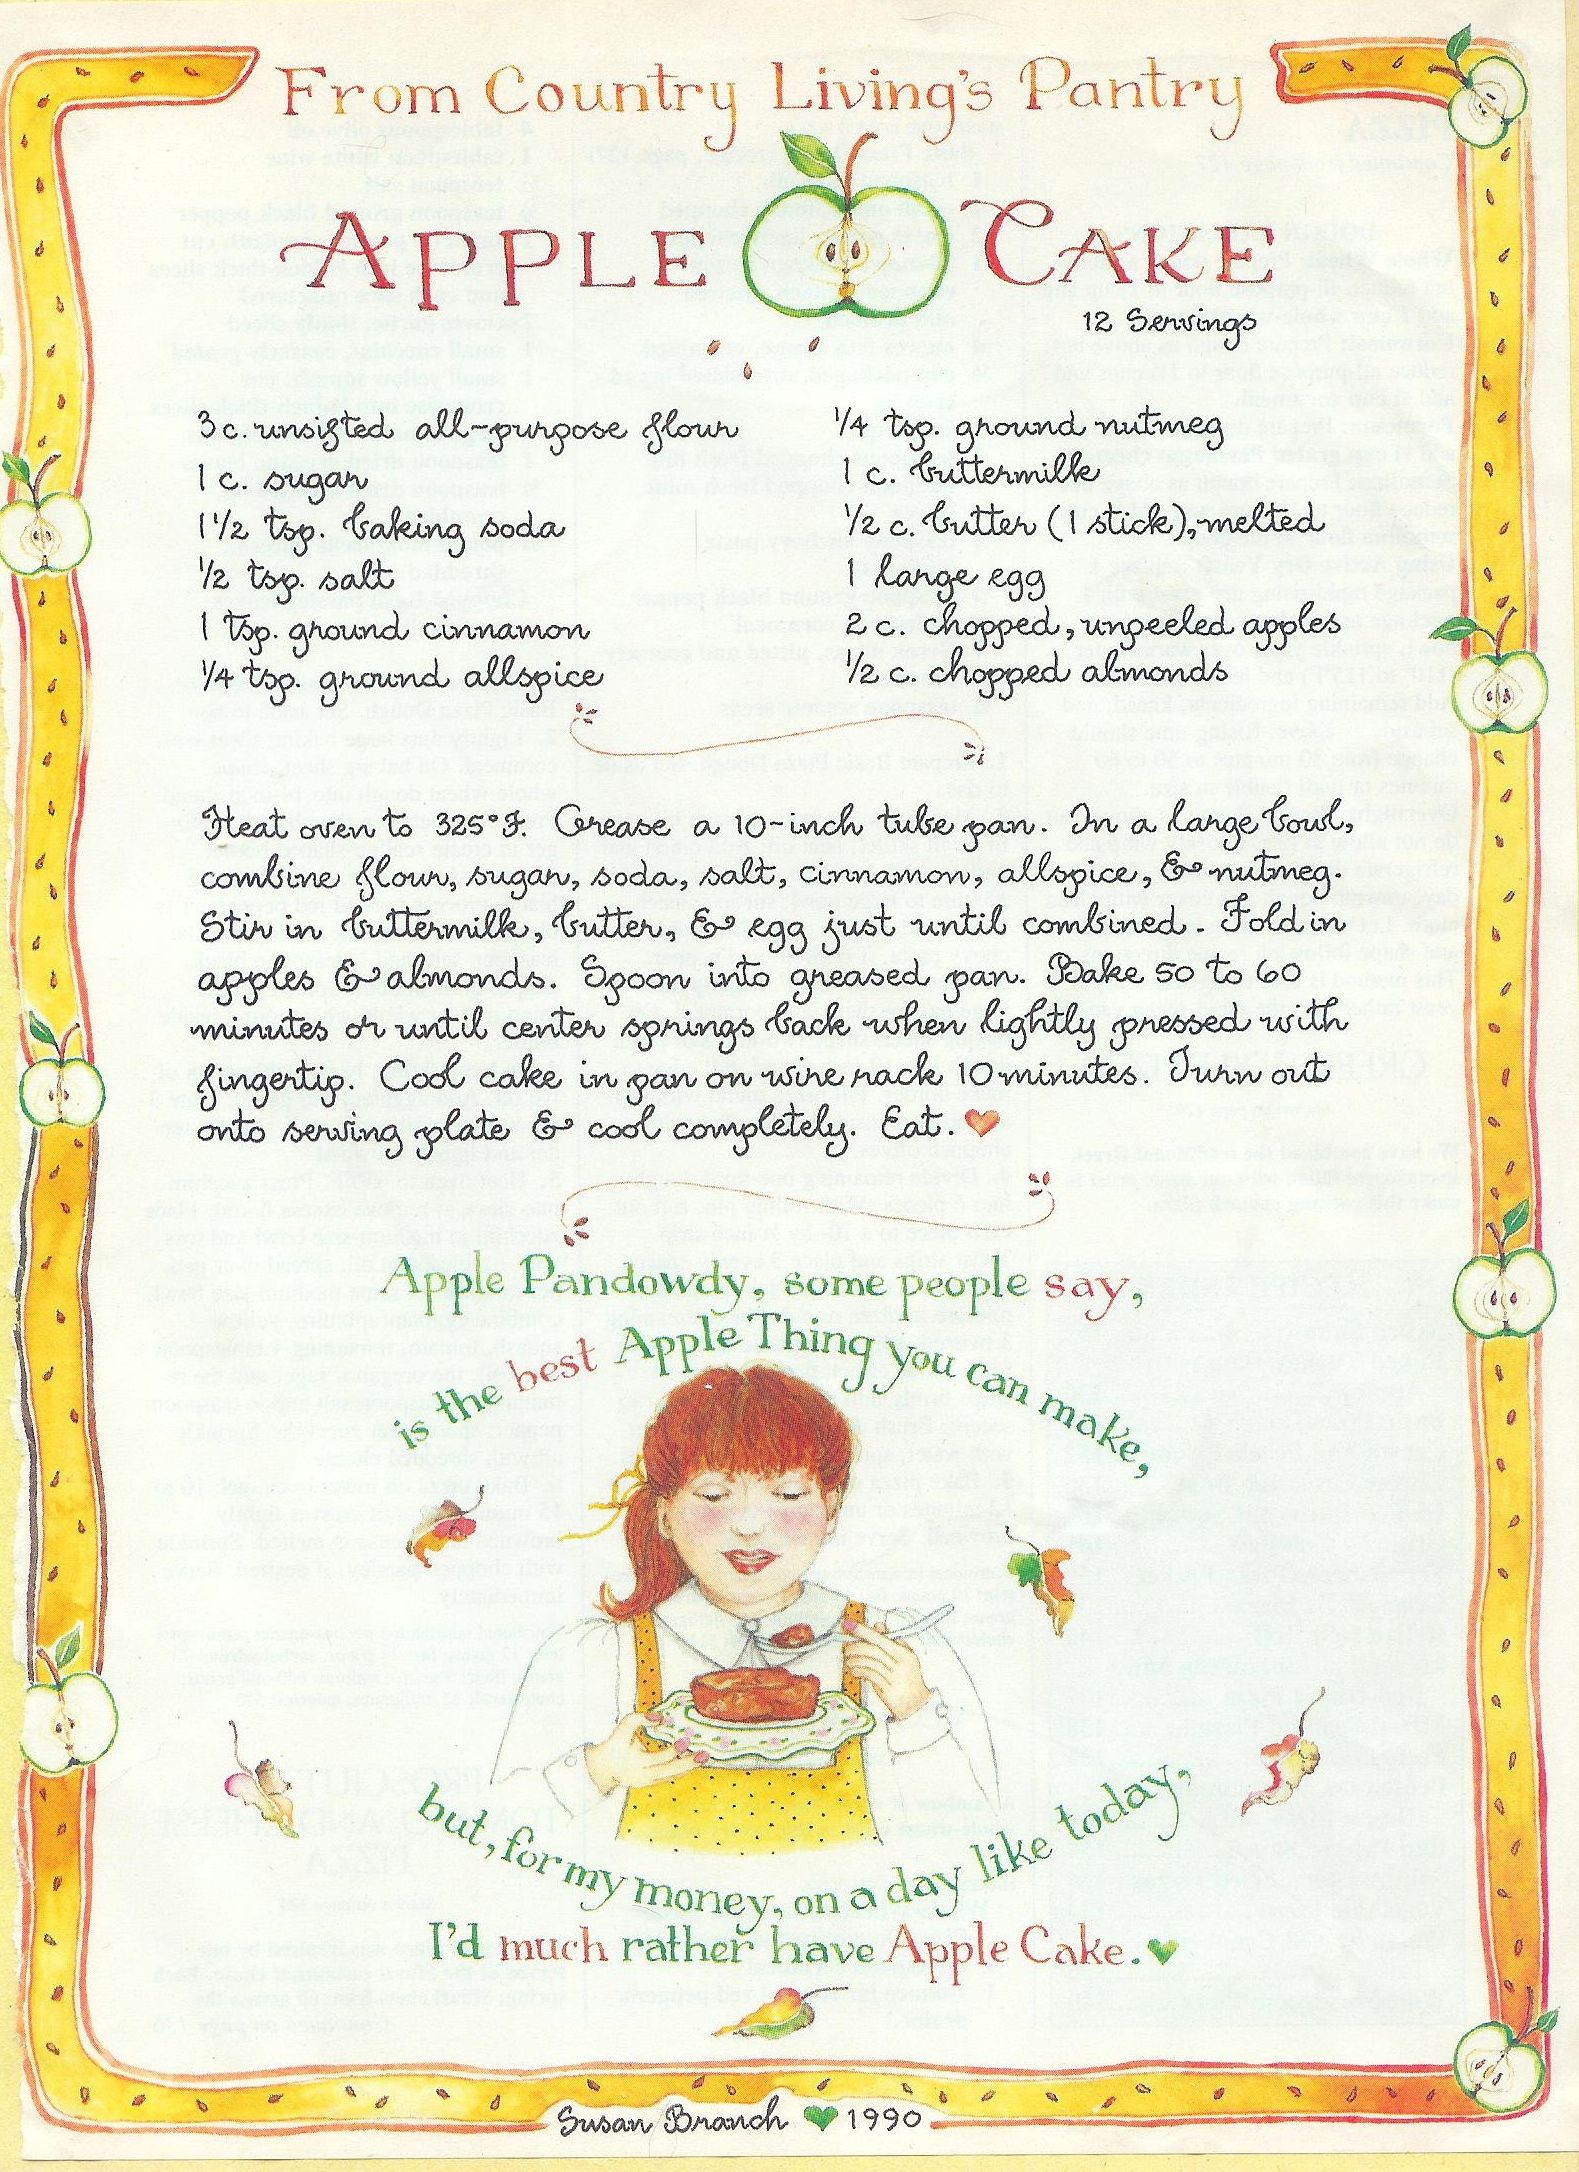 Apple cake susan branch for country living magazine cake for Country living magazine recipes